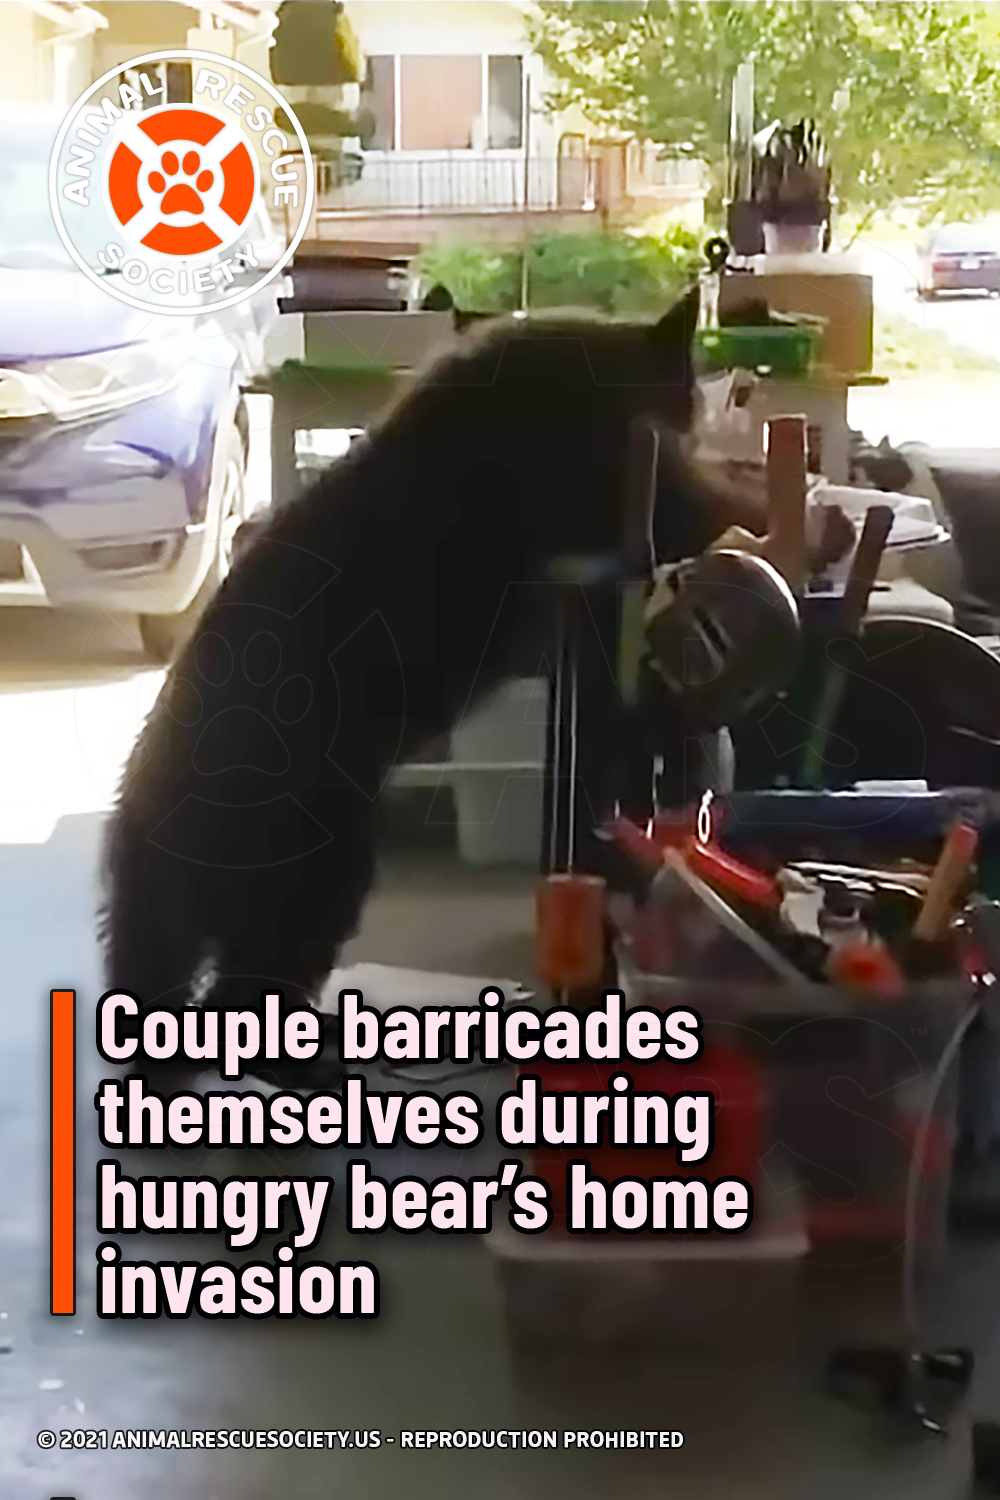 Couple barricades themselves during hungry bear's home invasion